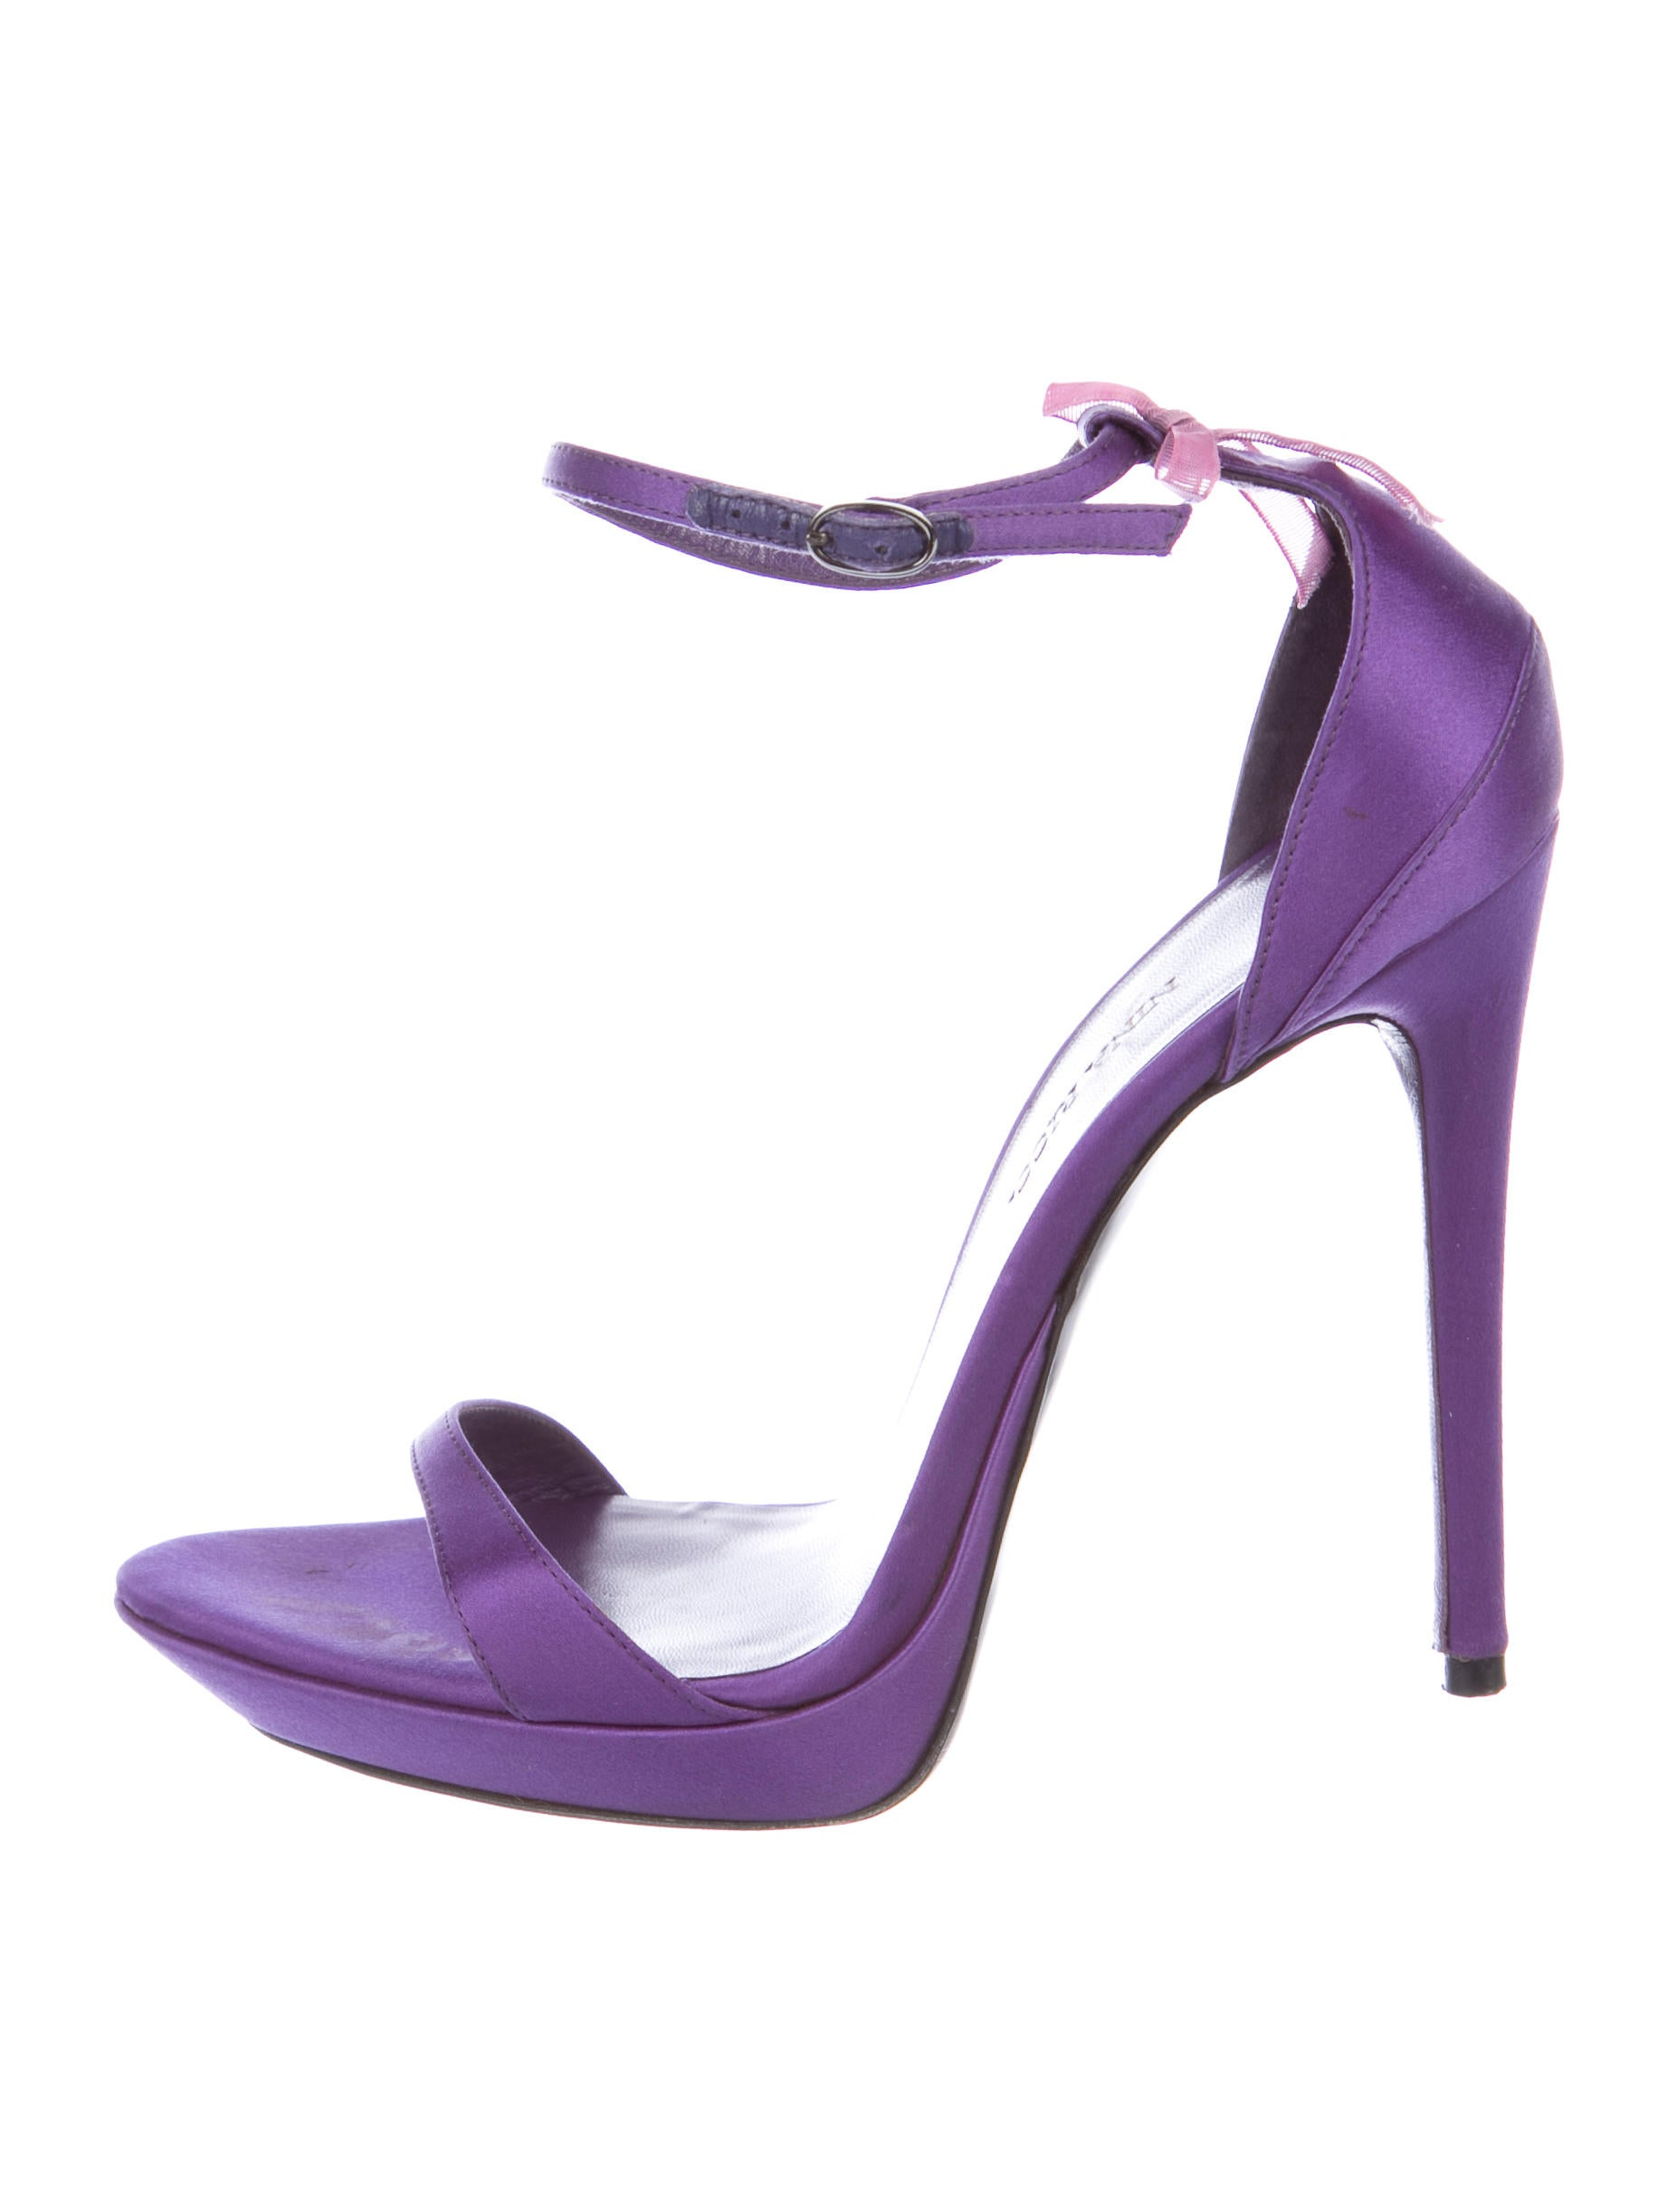 where to buy cheap real classic cheap online Nina Ricci Satin Ankle Strap Sandals 5m1BNpx